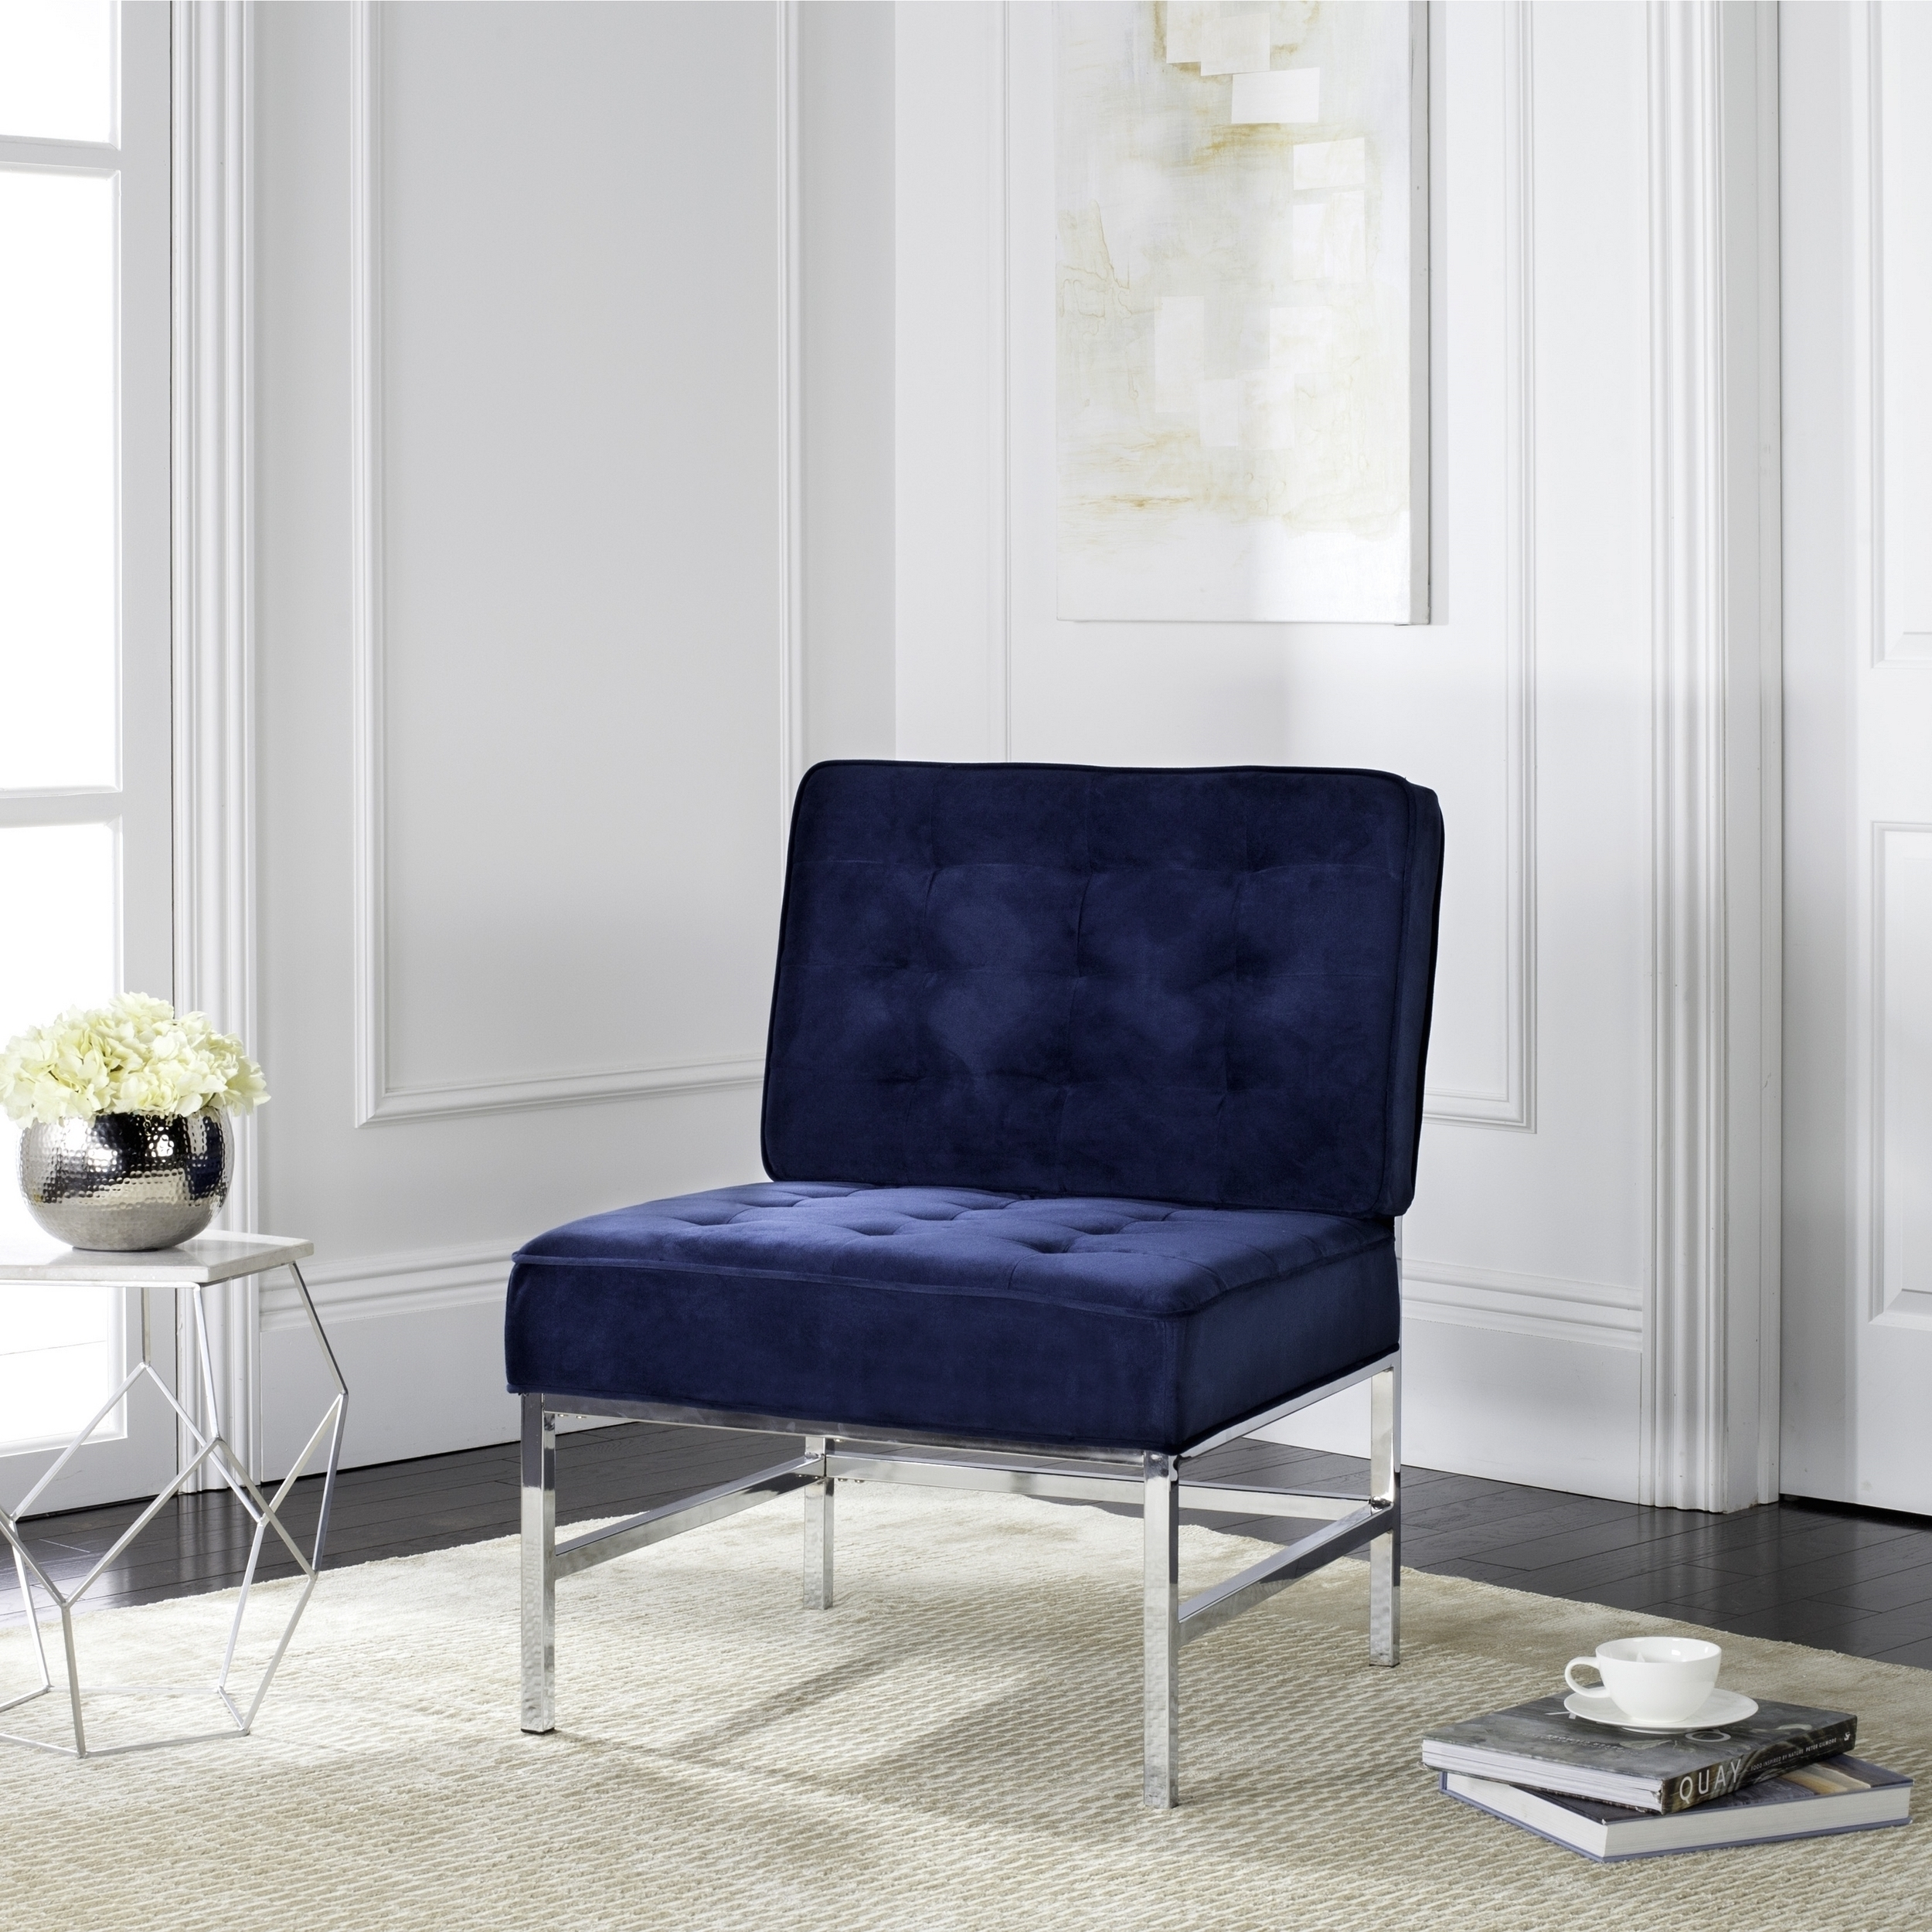 2019 Accent Sofa Chairs Intended For Ansel Blue Velvet Tufted Accent Chair Contemporary Armless Sofa (View 2 of 20)